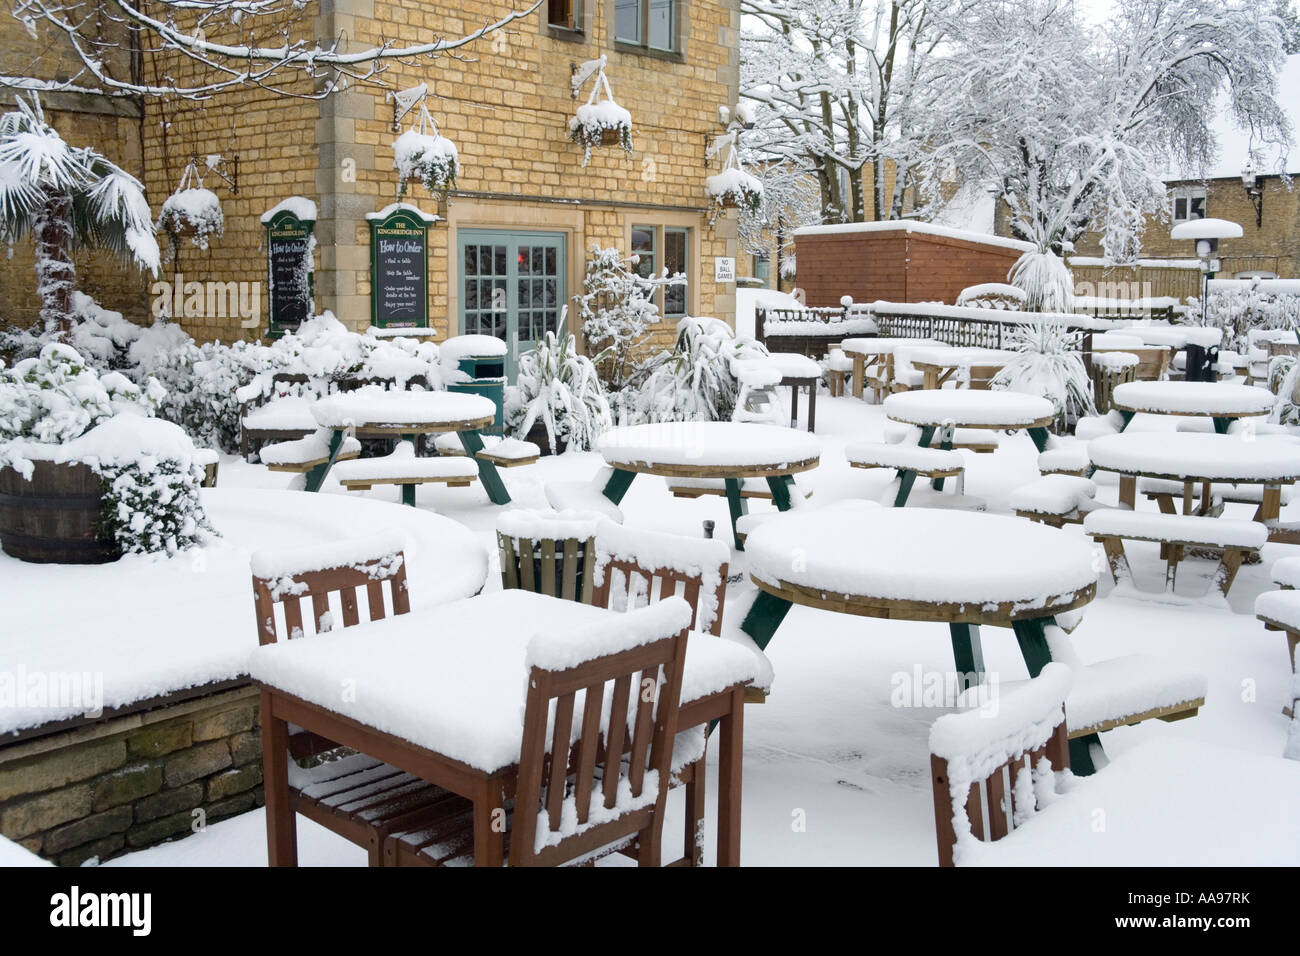 The chairs and tables in a pub garden covered by winter snow in the Cotswold village of Bourton on the Water Gloucestershire - Stock Image